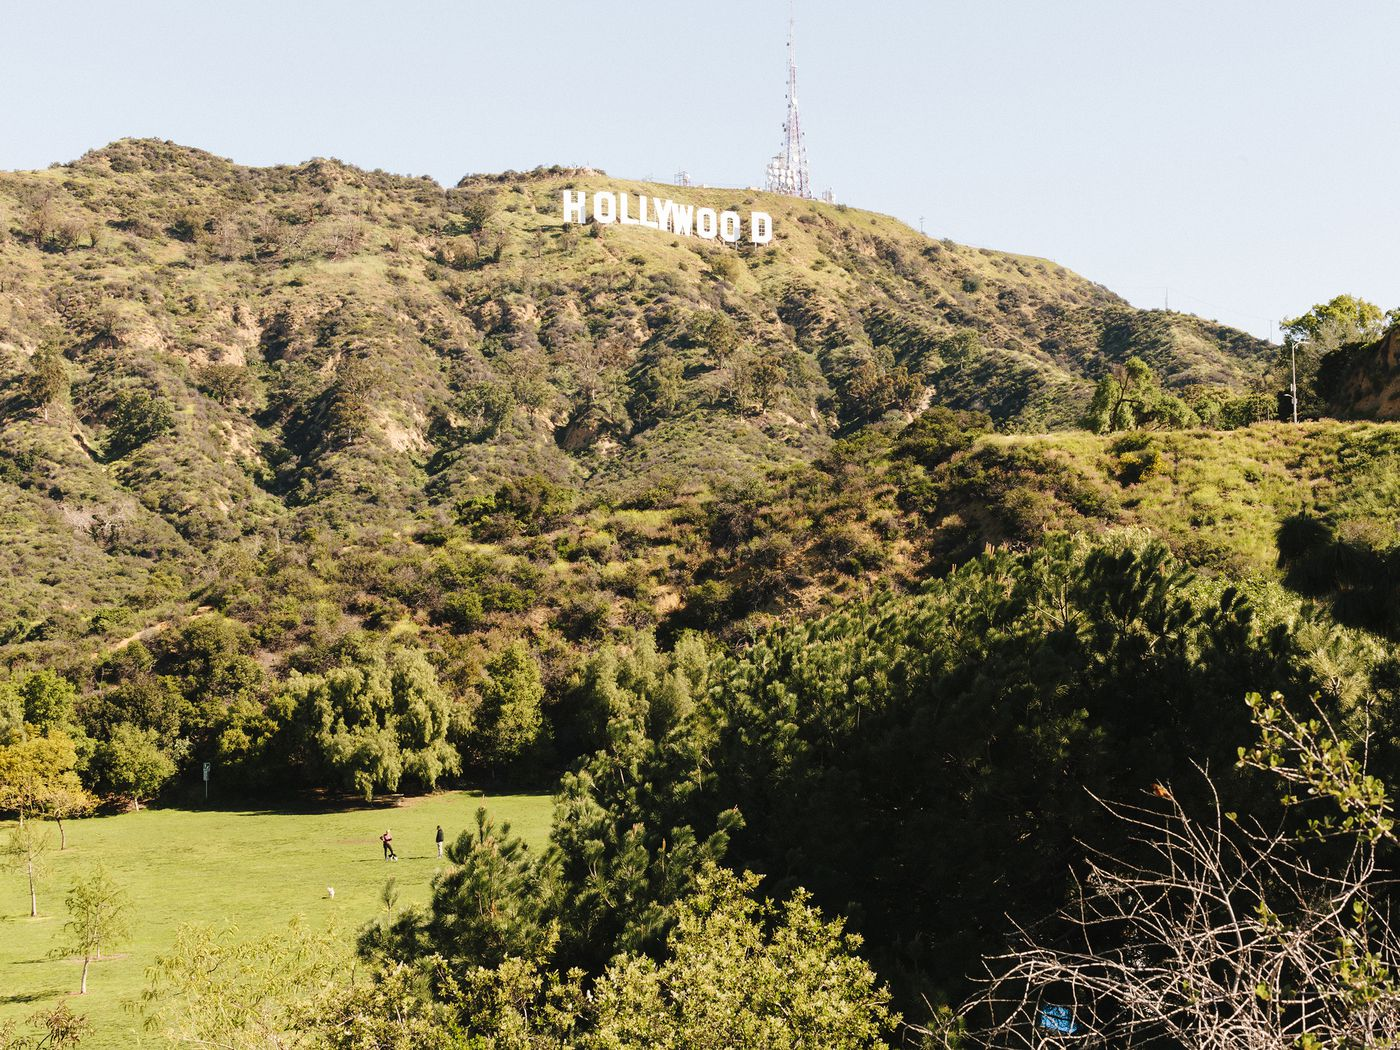 The Hollywood Sign: Best places to see the Hollywood Sign - Curbed LA